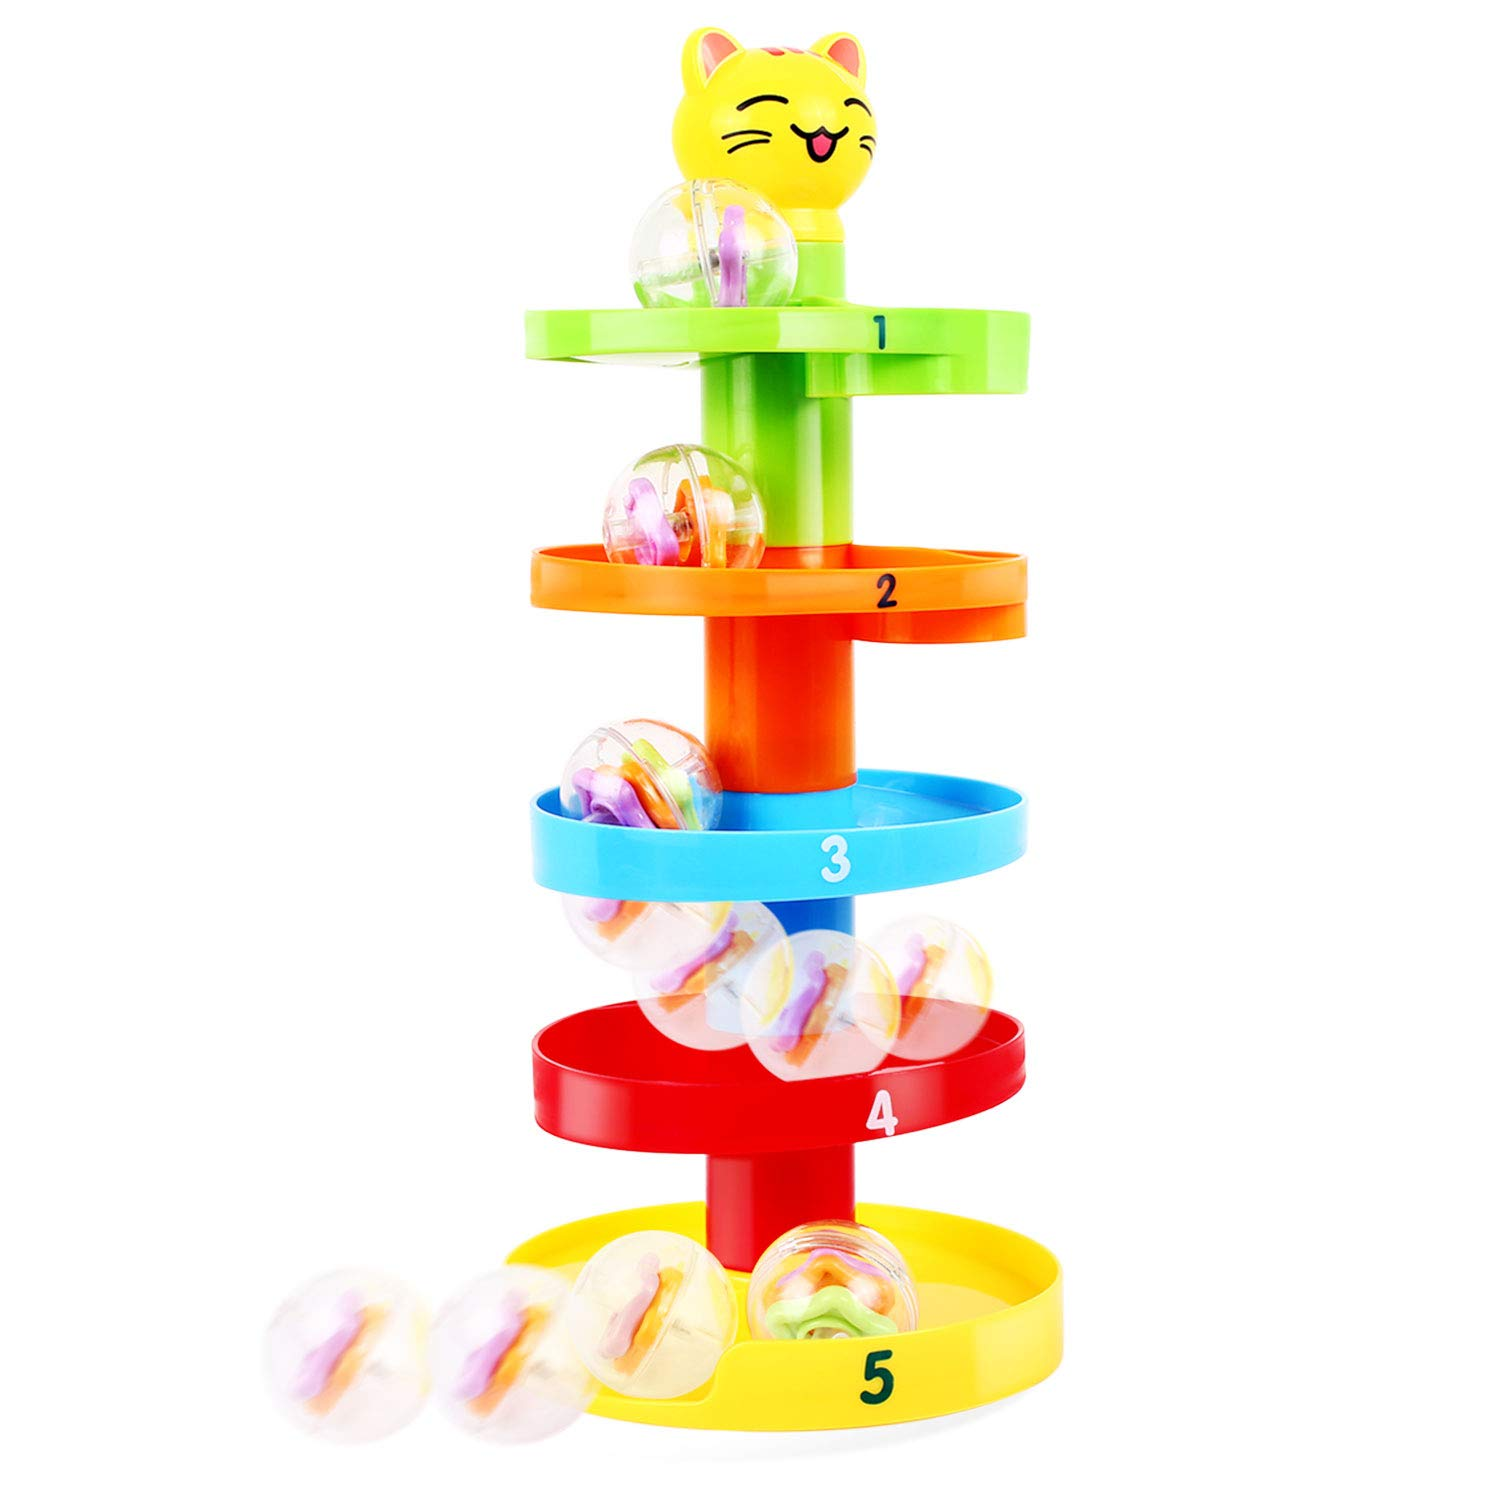 Welding & Soldering Supplies Baby Childern Toys Tower Puzzle Rolling Ball Bell Stackers Toys Kids Developmental Educationsl&learning Toy High Safety